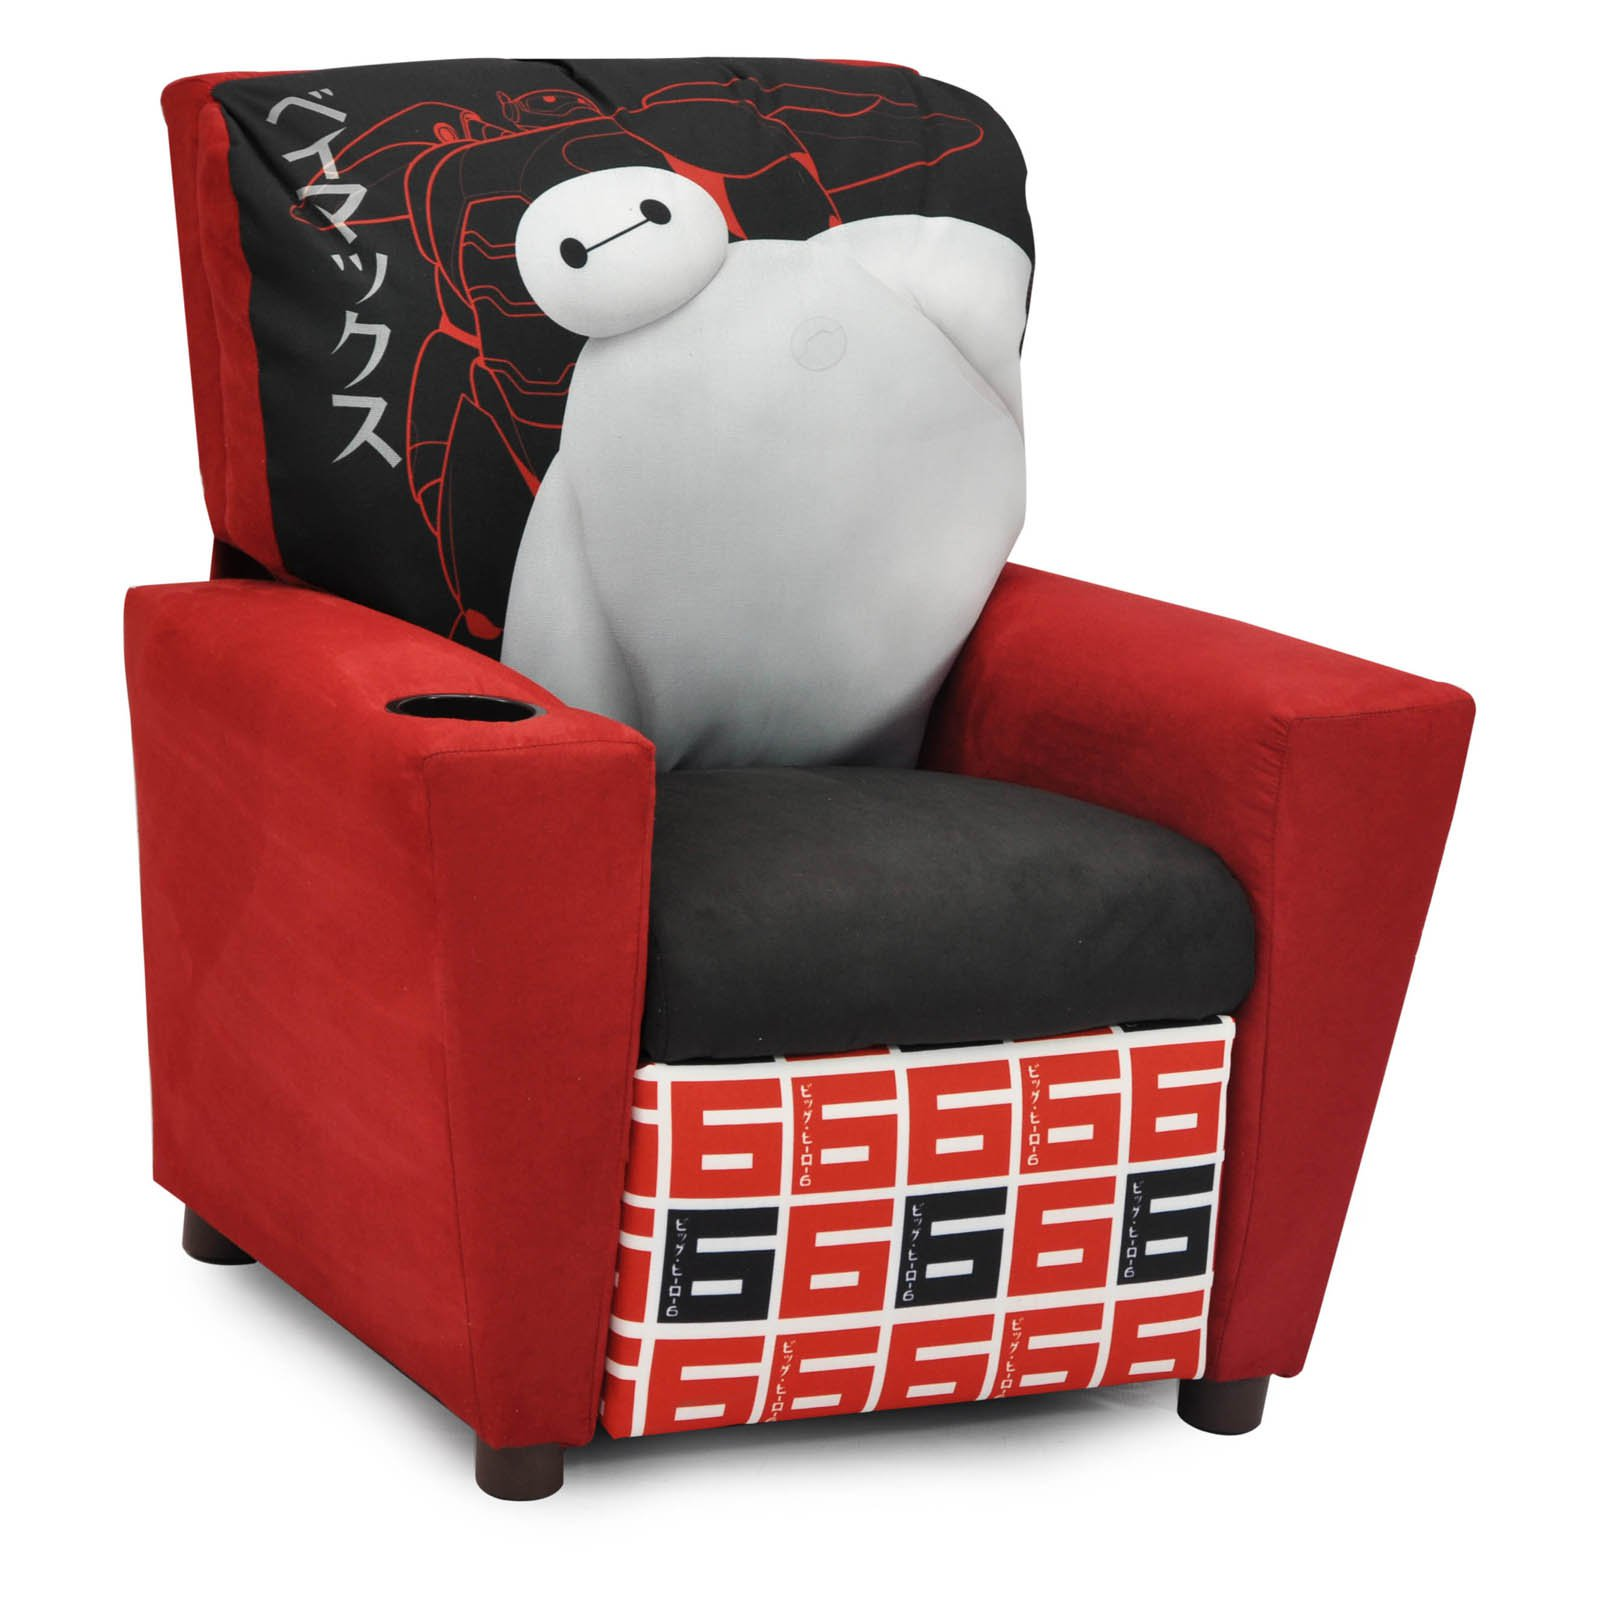 Kidz World Big Hero 6 Kids Recliner